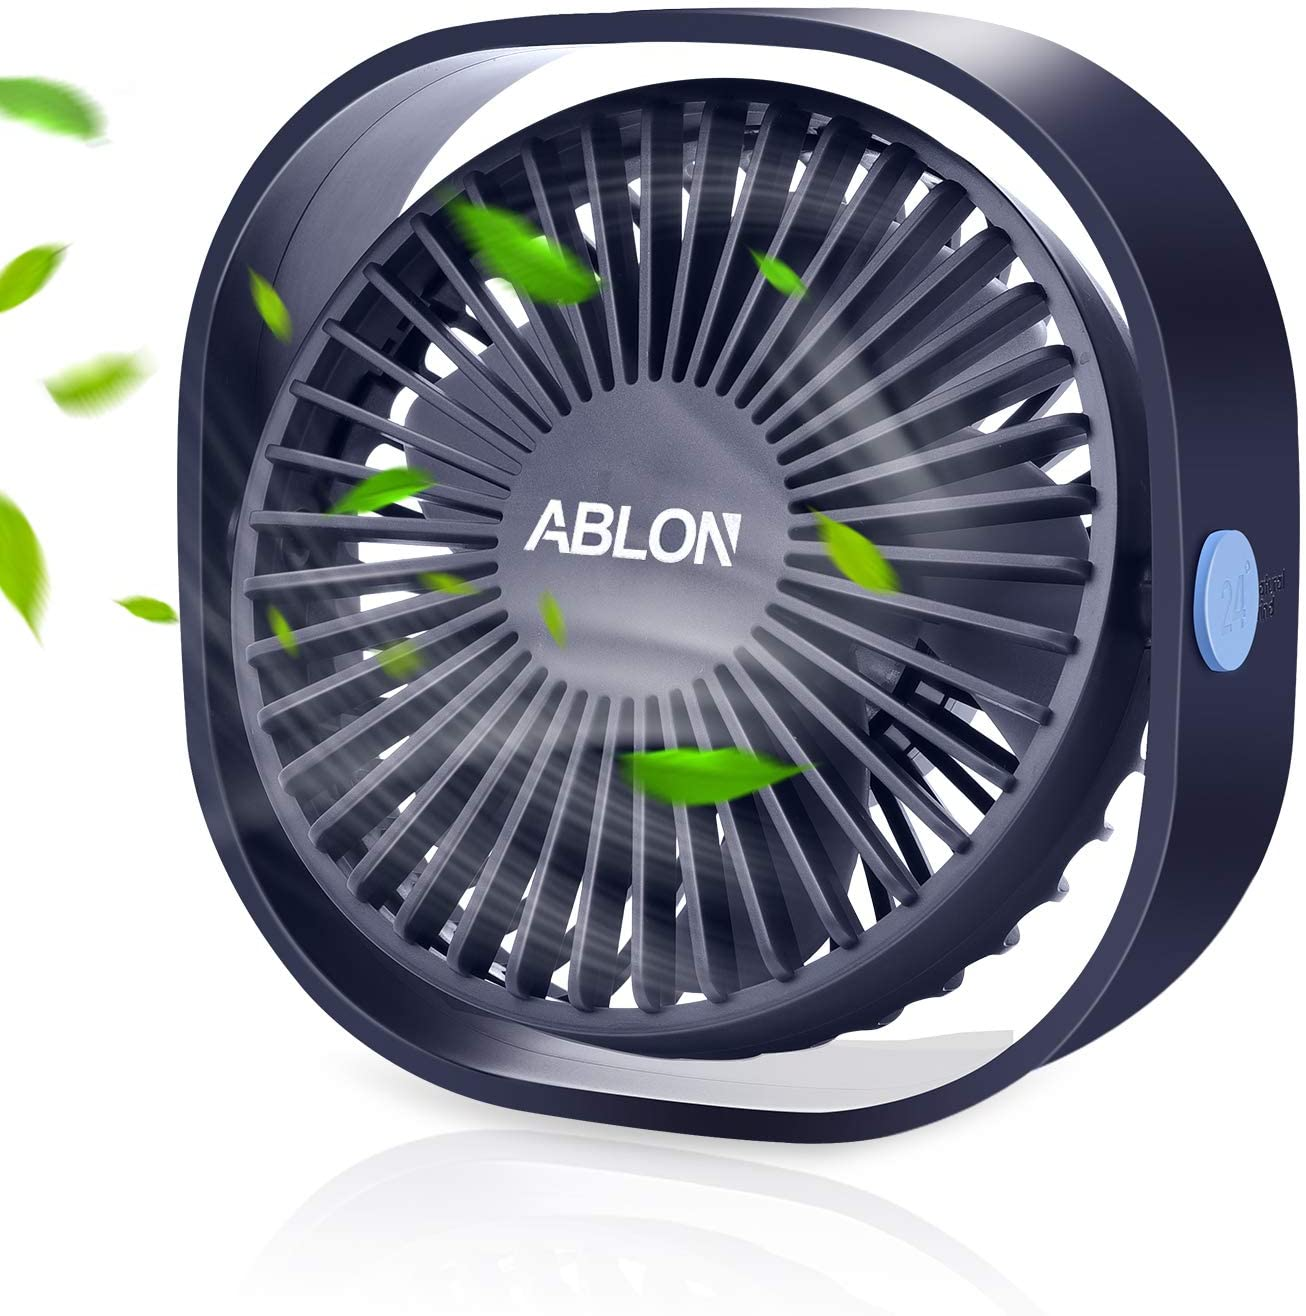 Ablon Desk Fan, Small Table Personal Portable Mini Fan Powered by USB, 3 Speed and Quiet Design for Desktop Office(Navy Blue)